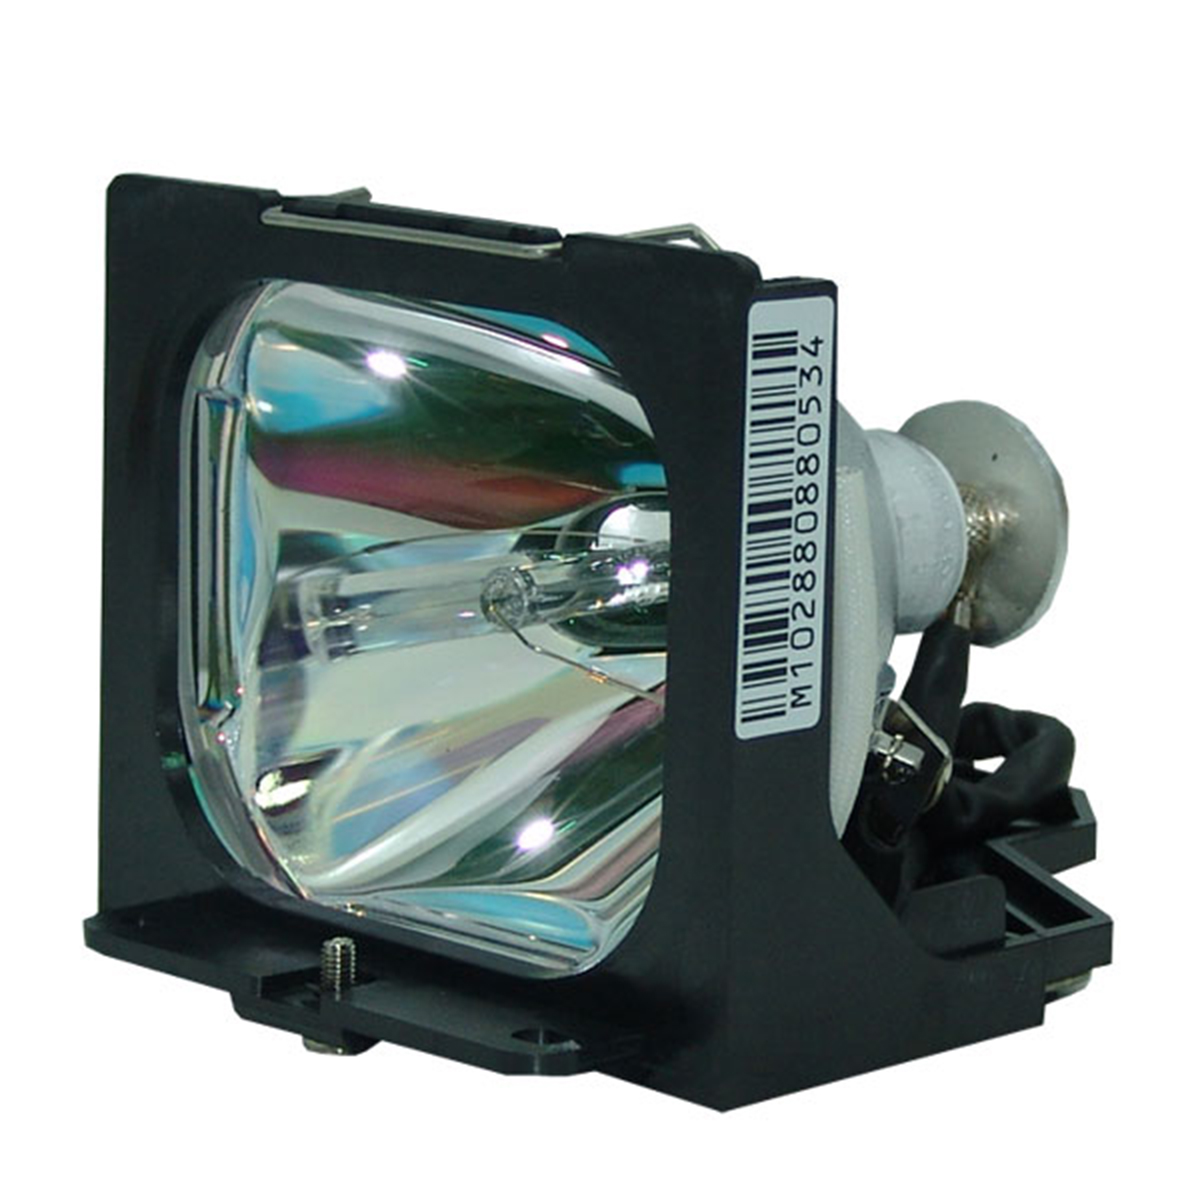 projection lamp Sony xl-5100 lamp replacement philips lamp free 6 month warranty lamp with housing price :  digital projection projector lamps.